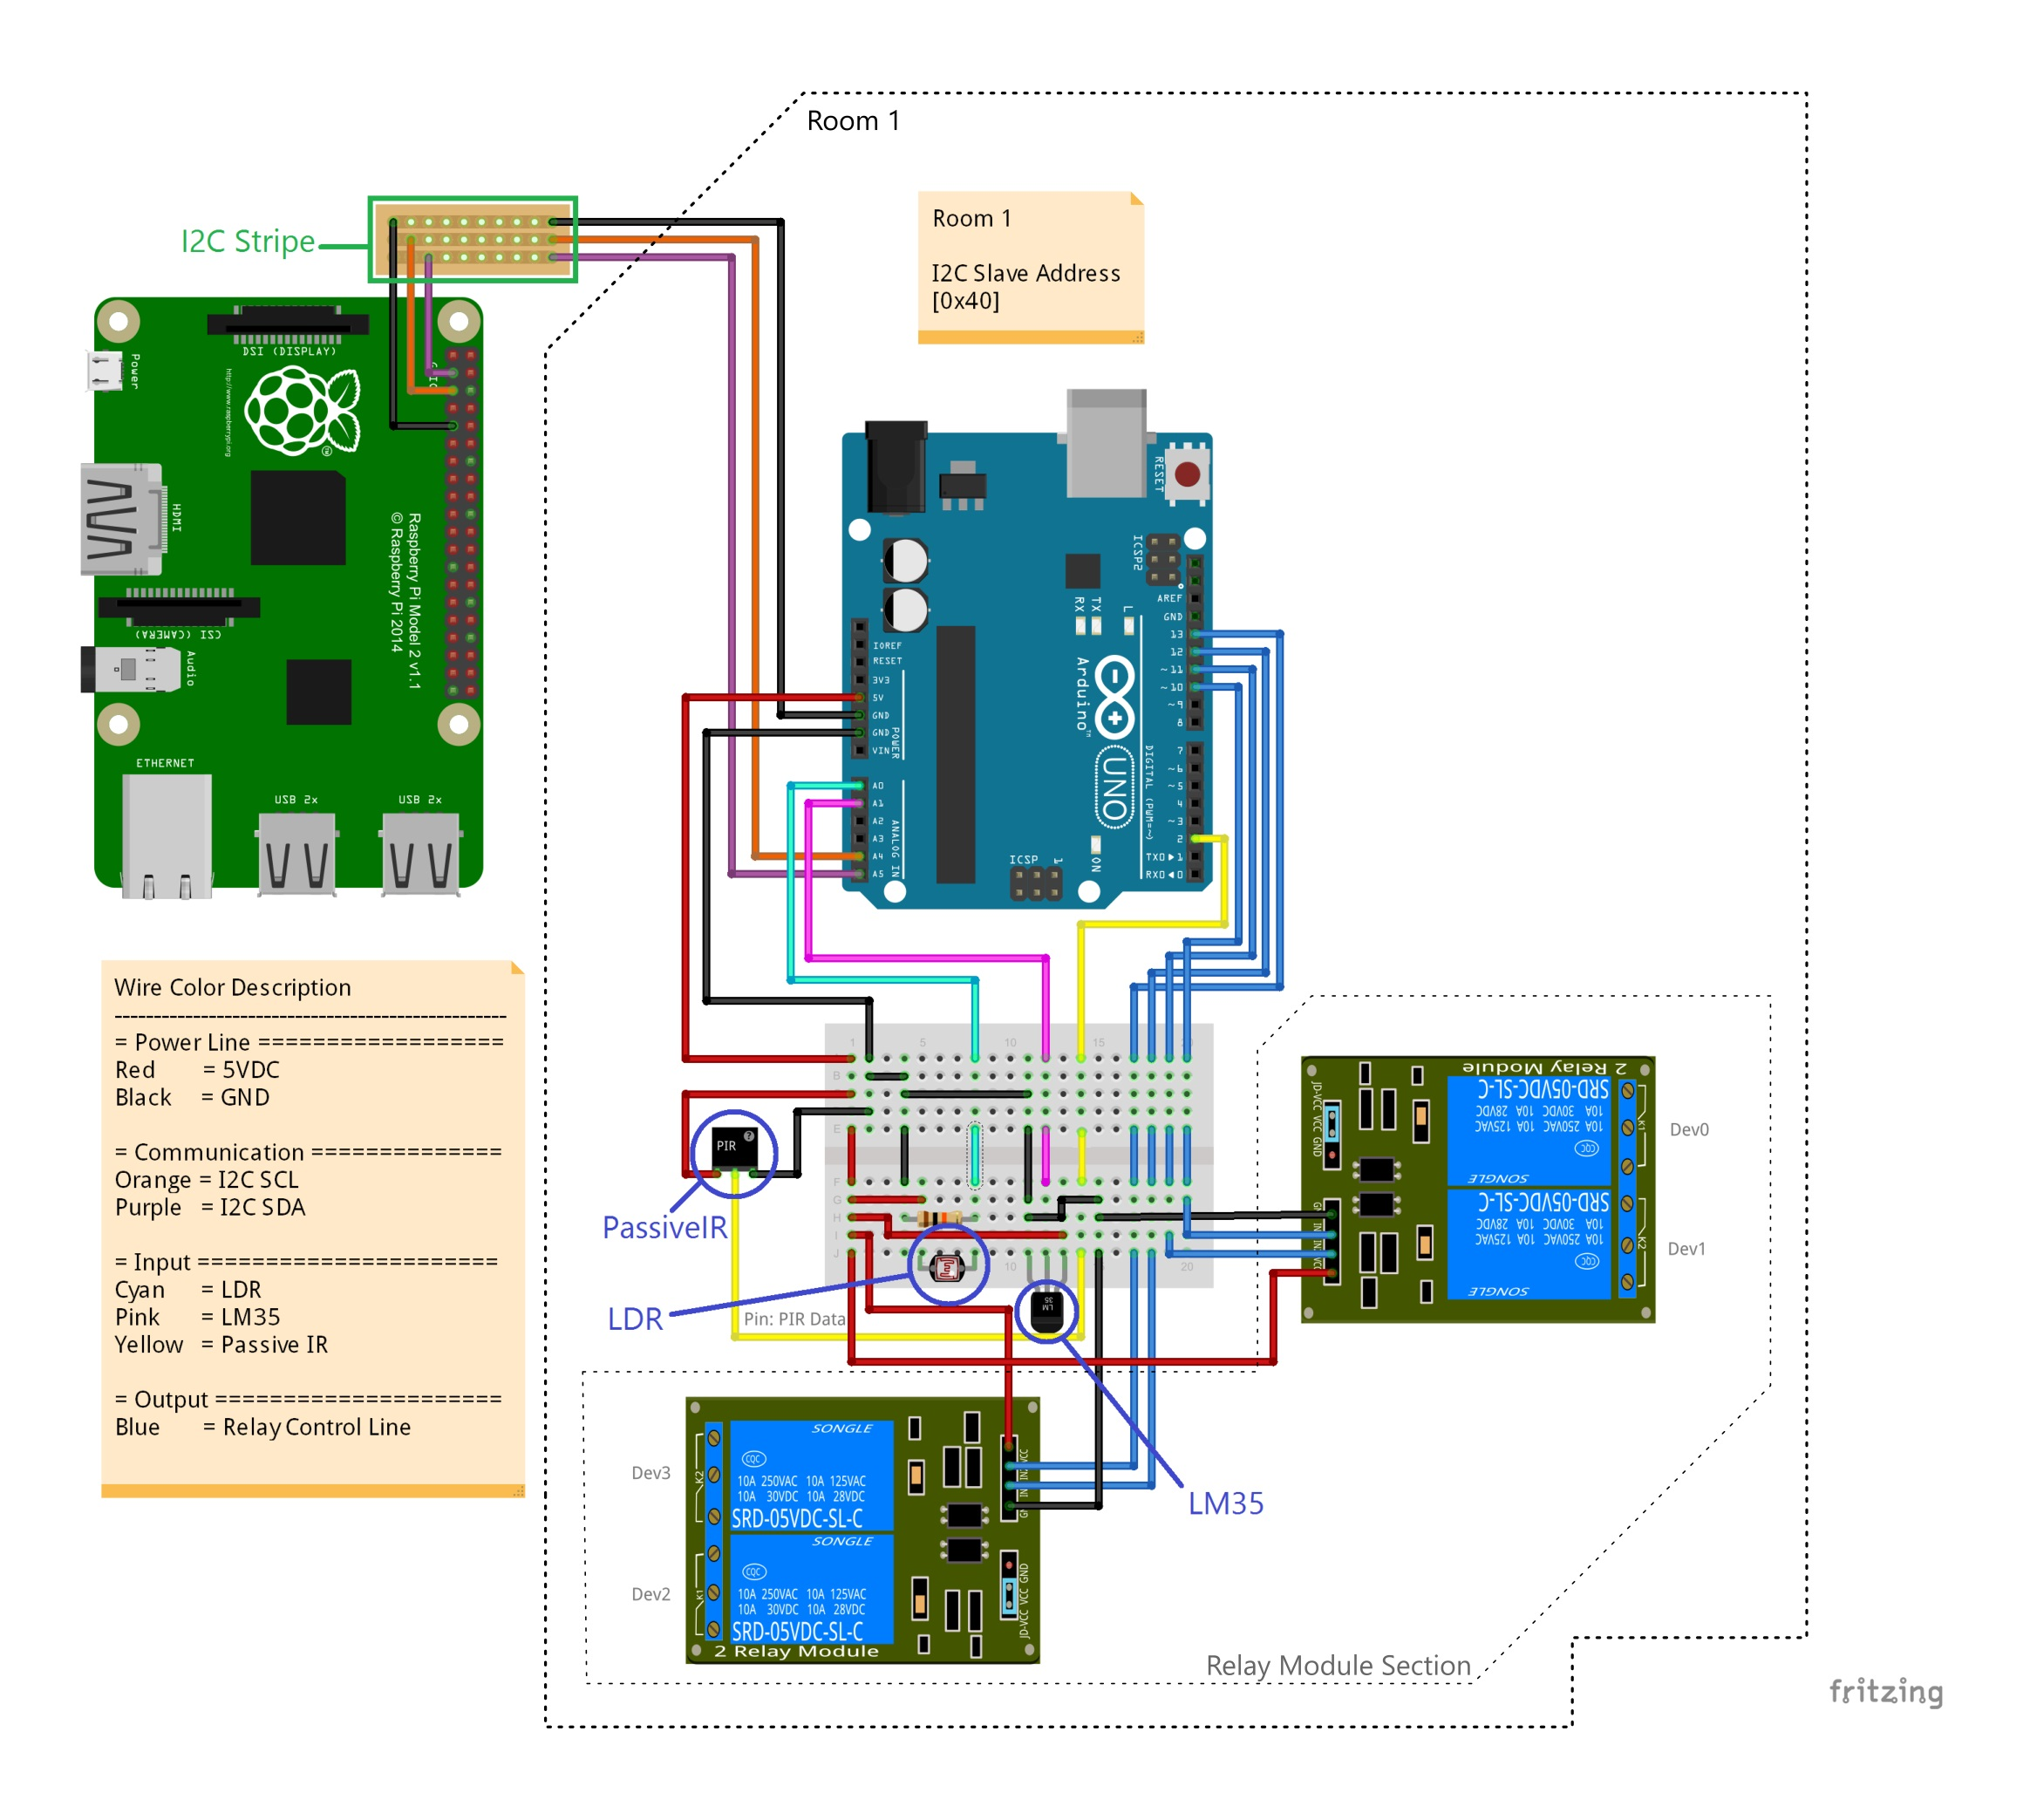 Home Automation Using Raspberry Pi 2 And Windows 10 Iot Switch Light Sensor Ldr Circuit Also Simple Relay Diagram Fritzing Schematic File